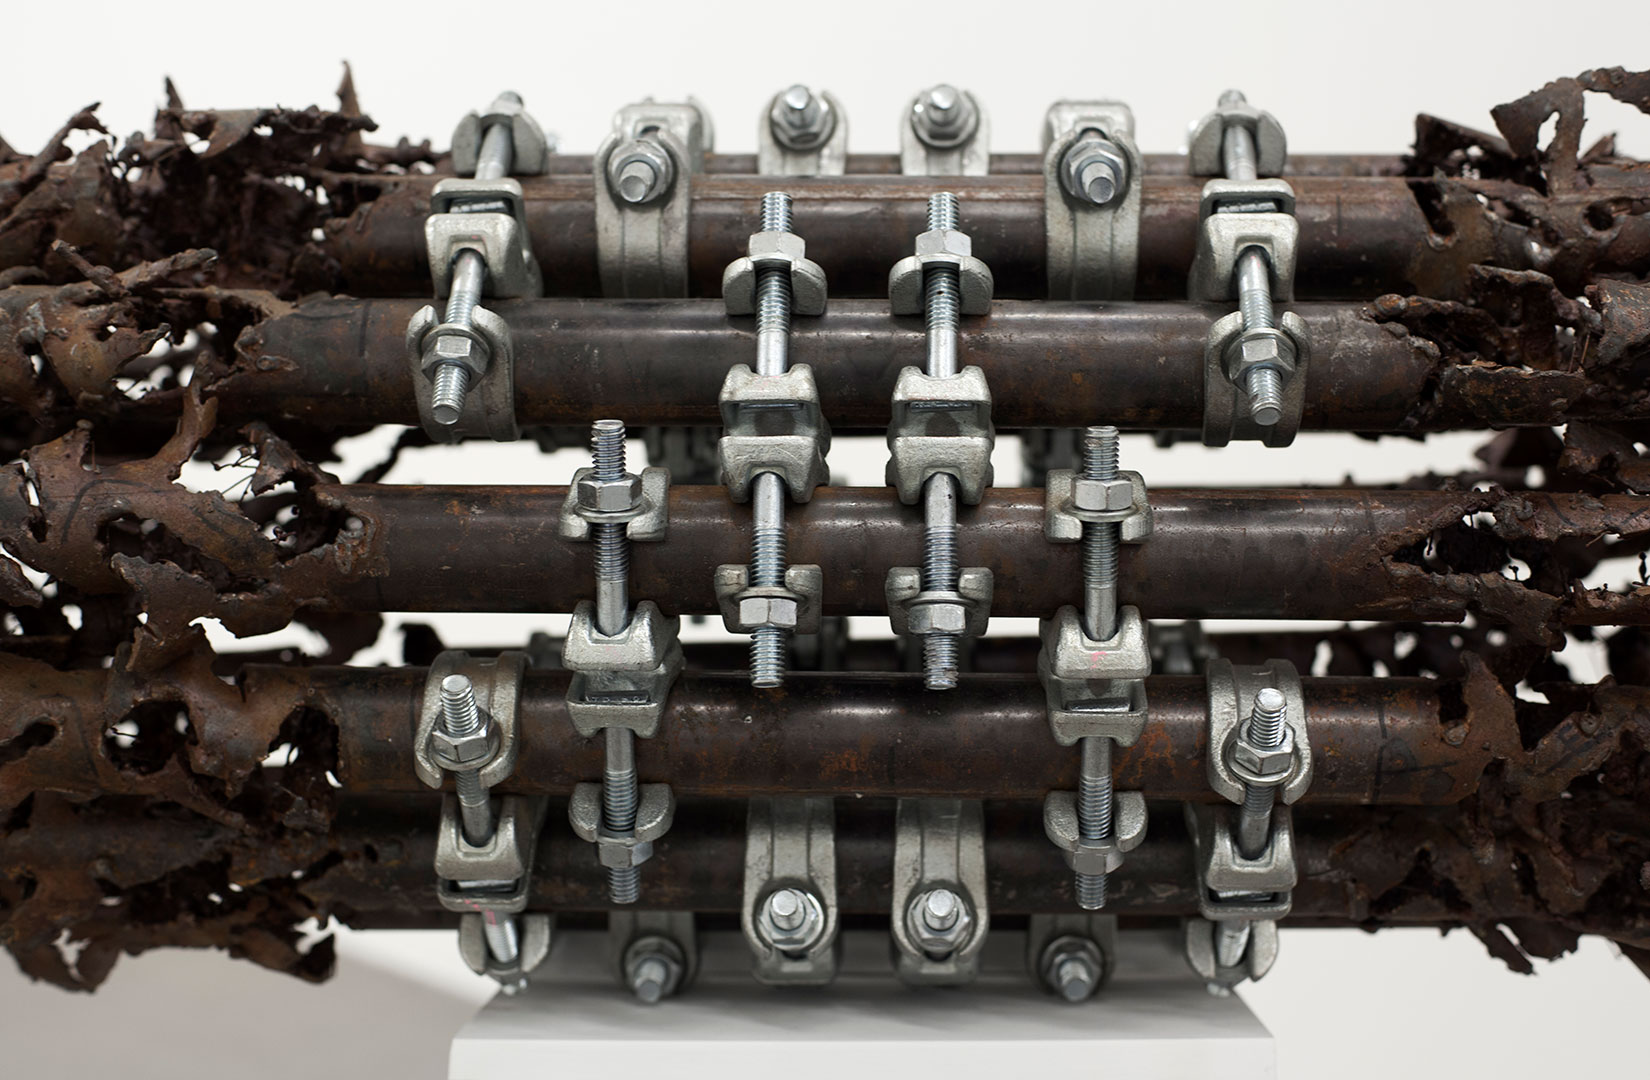 Untitled | 140 x 54 x 40 cm | Iron piping and scaffolding clumps